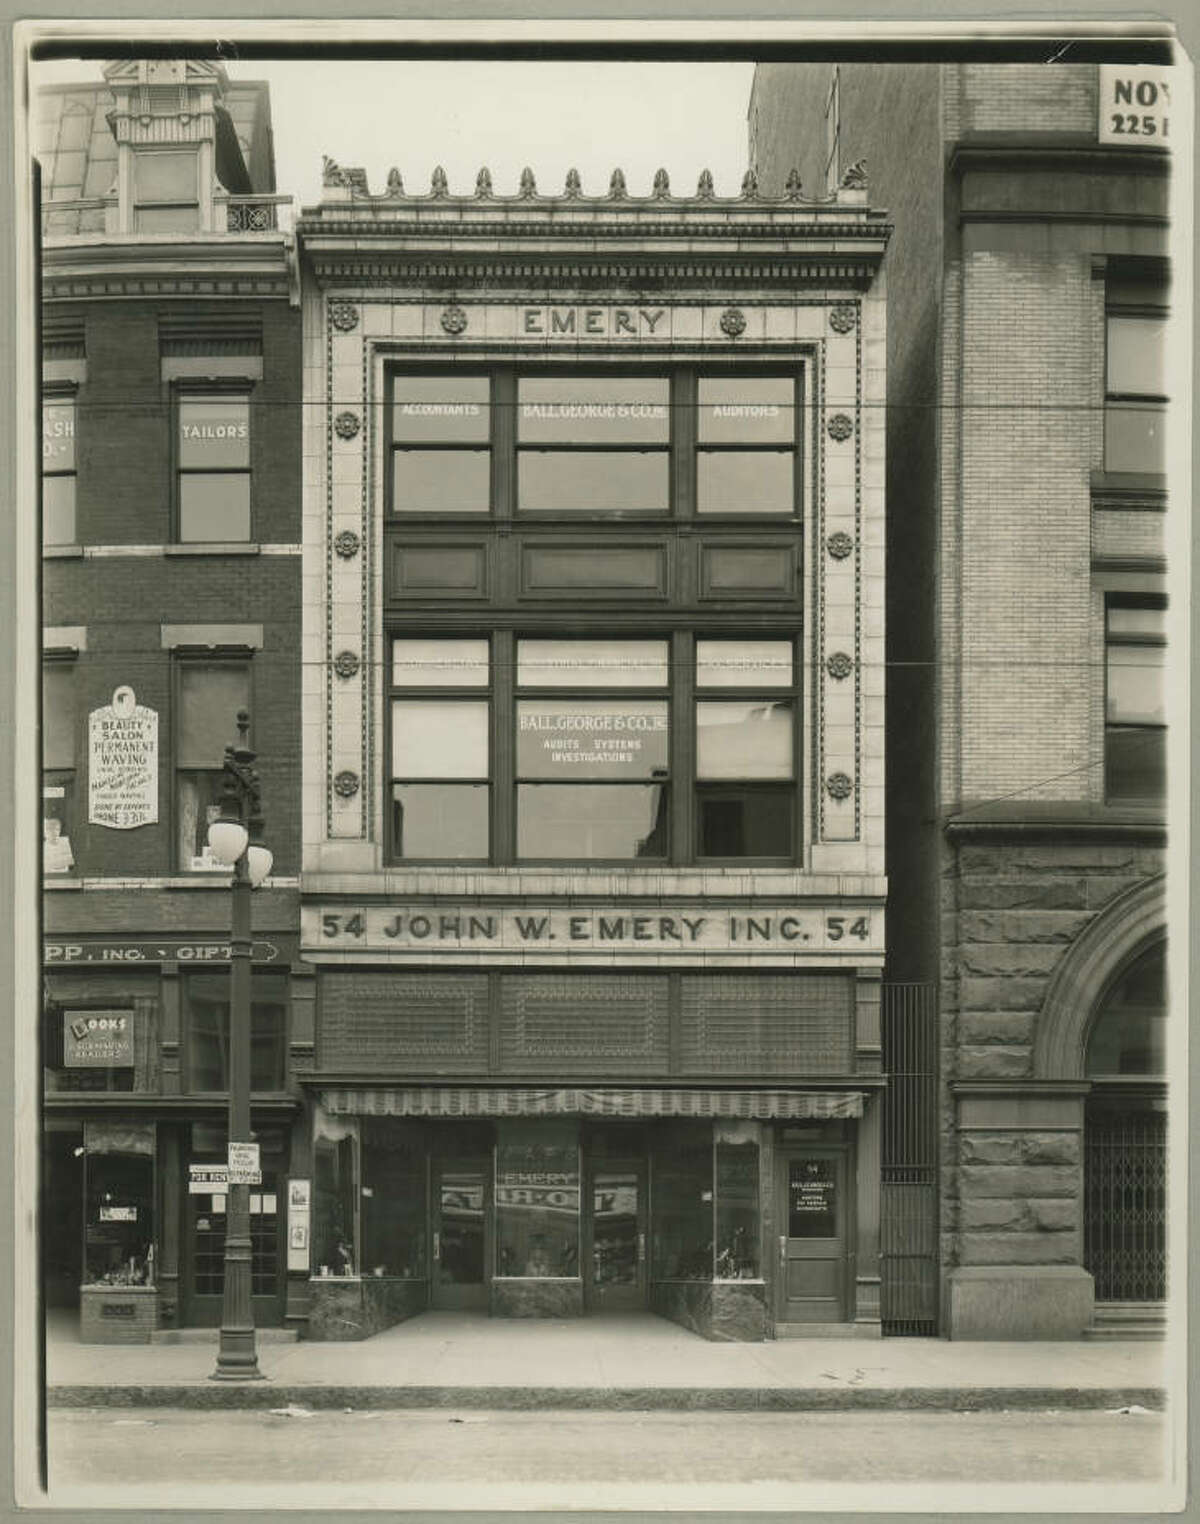 The former John W. Emery shoe store during the 1920s. A developer plans to convert the now-vacant building into apartments and retail shops.